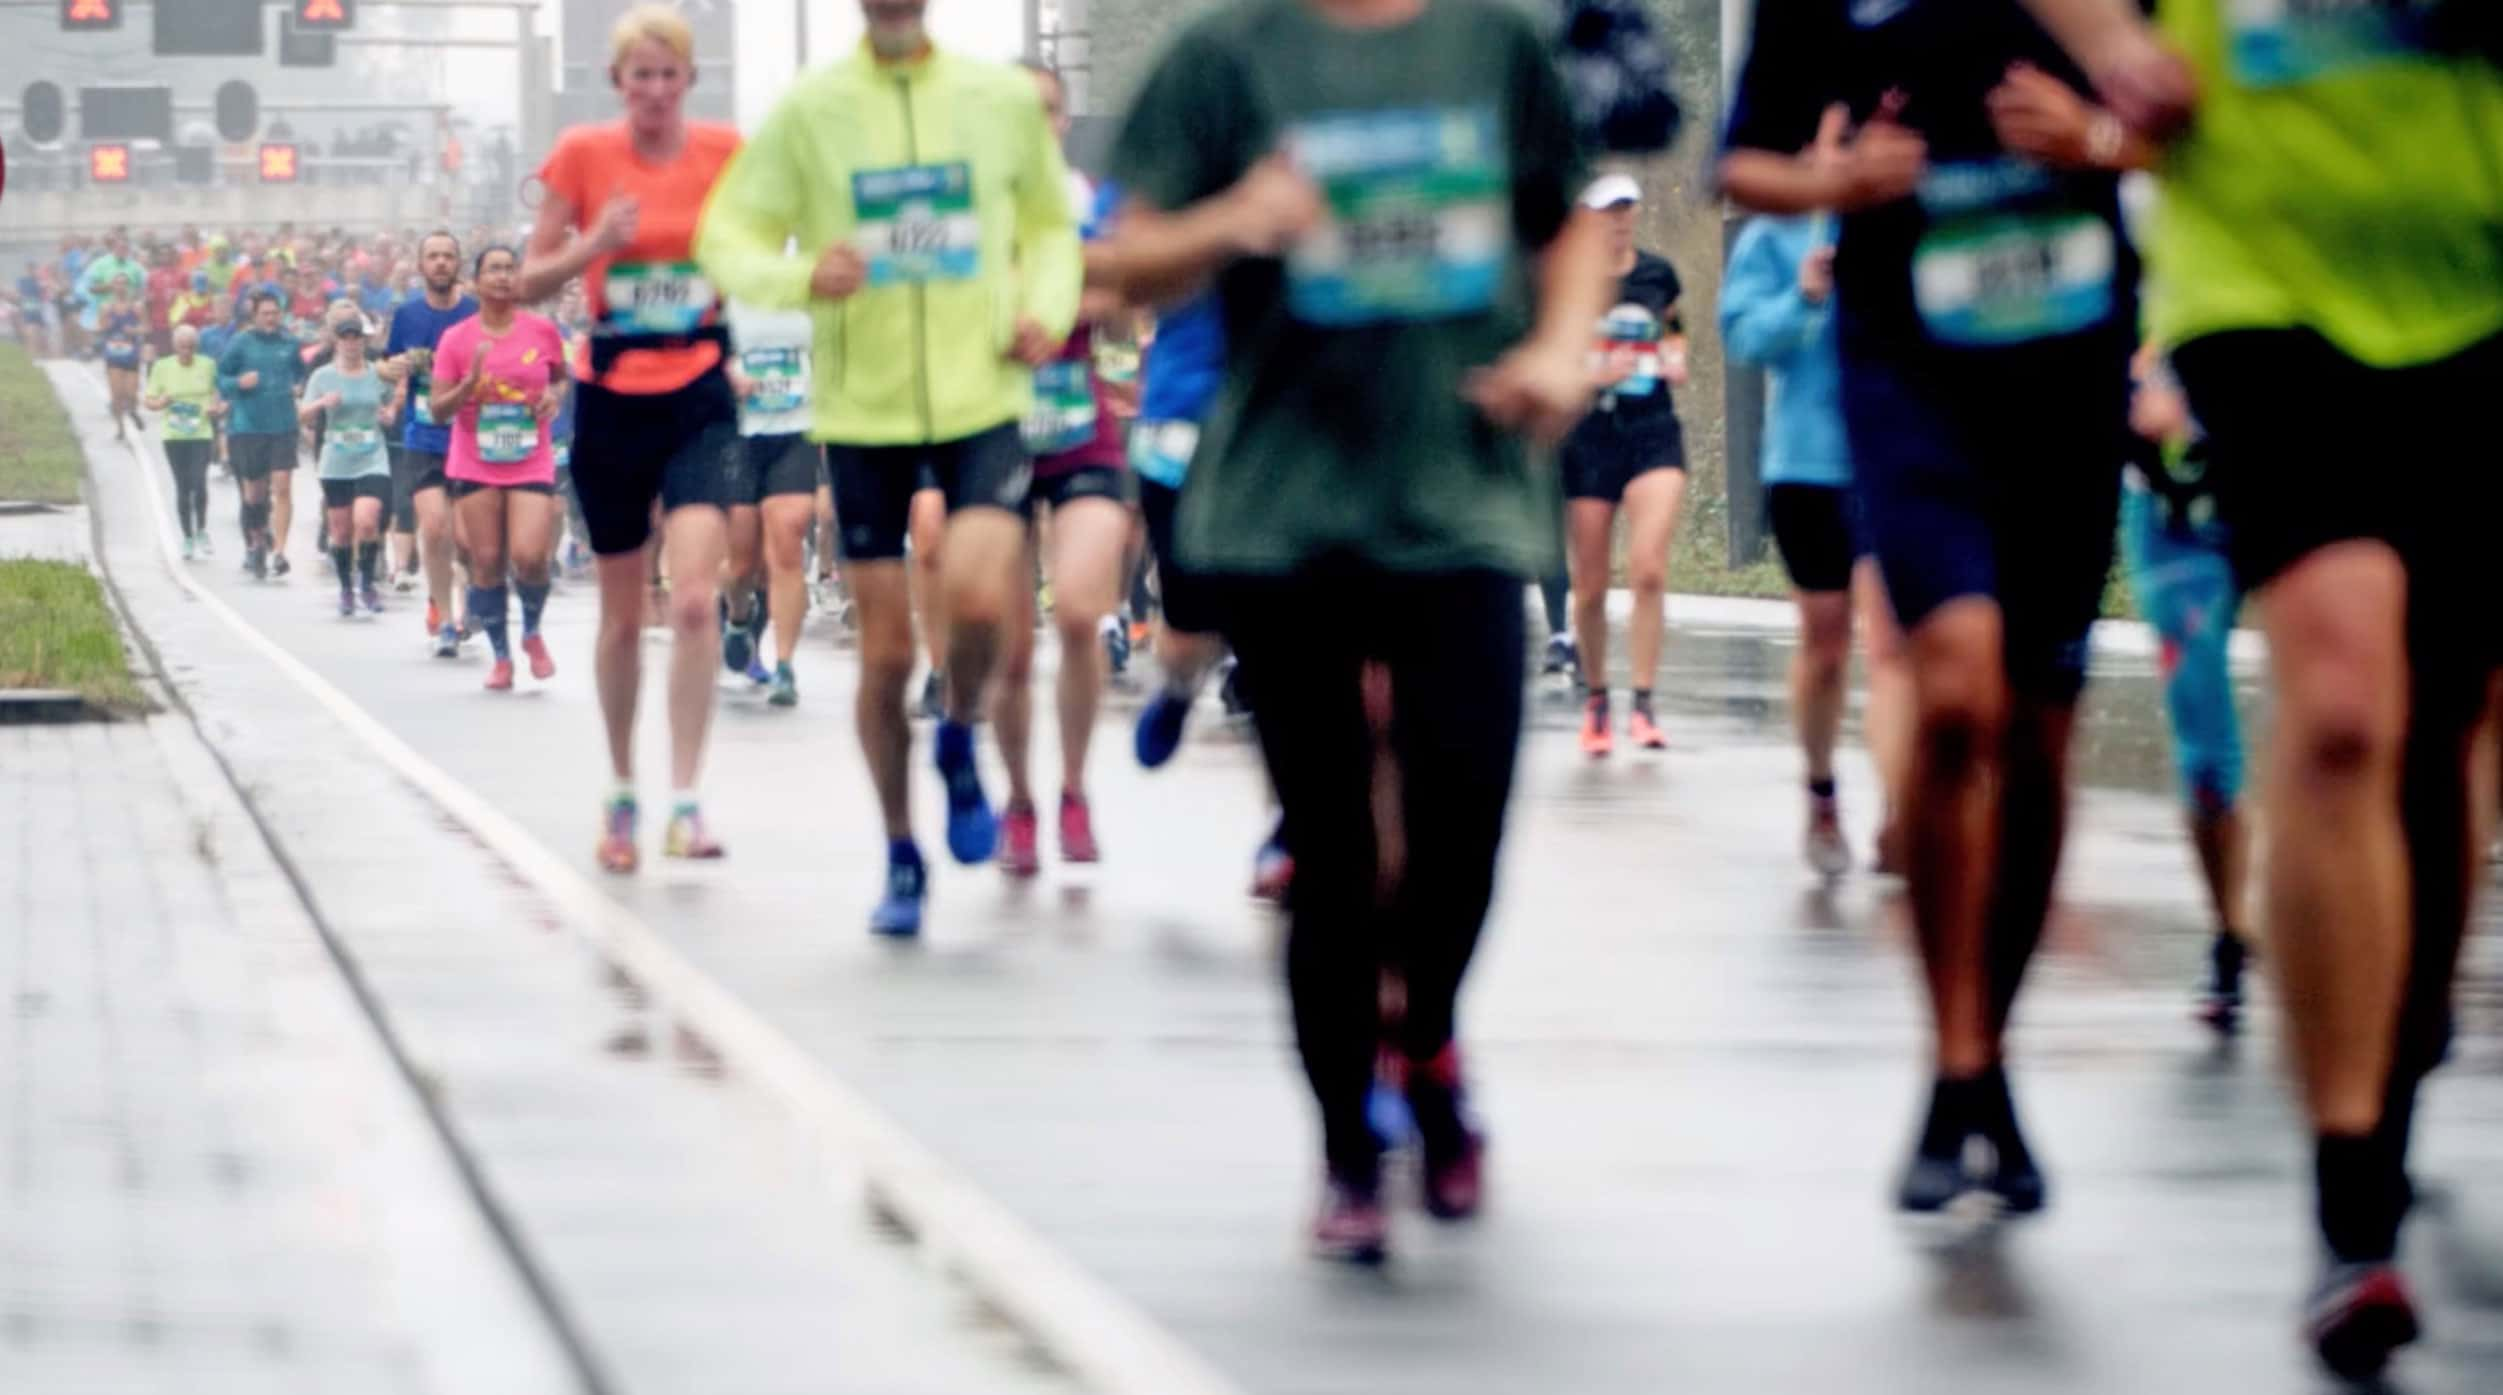 Photo of runners in a marathon.